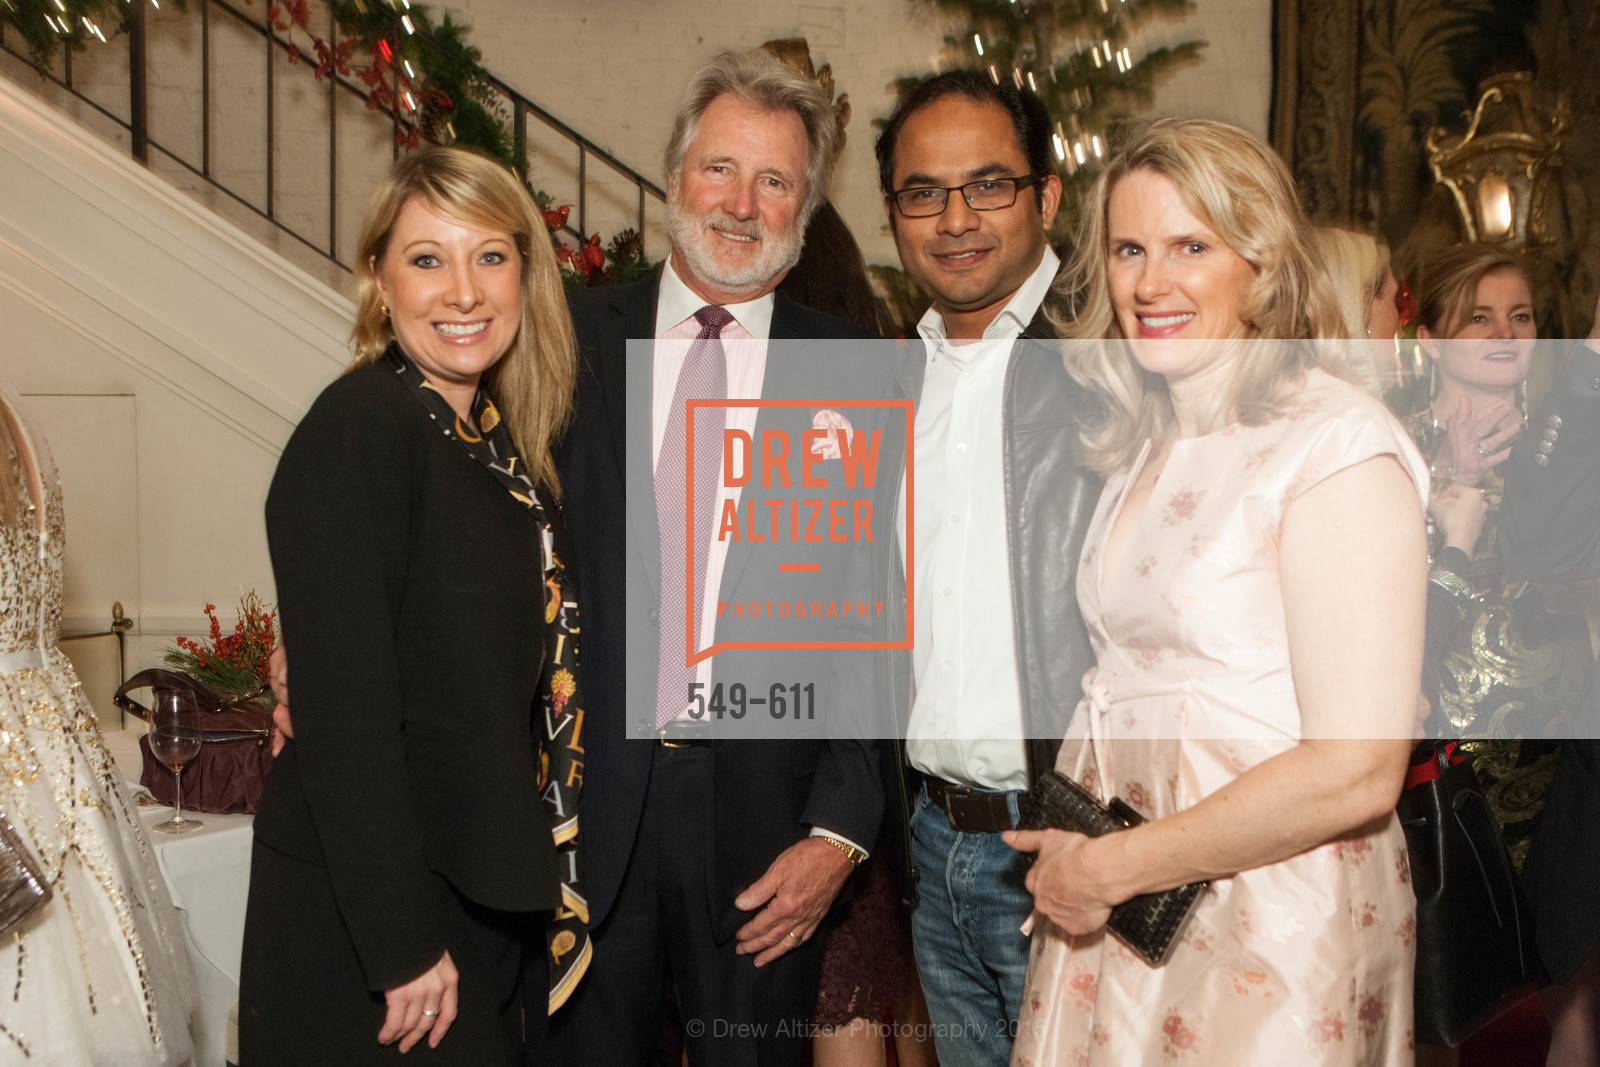 Jennifer Mancuso, Steve Burrill, Mainul Mandal, Marie Hurabiell, San Francisco Ballet Auxiliary's Gala Launch party hosted by La Perla., VILLA TAVERA. 27 HOTALING PLACE, December 1st, 2015,Drew Altizer, Drew Altizer Photography, full-service agency, private events, San Francisco photographer, photographer california